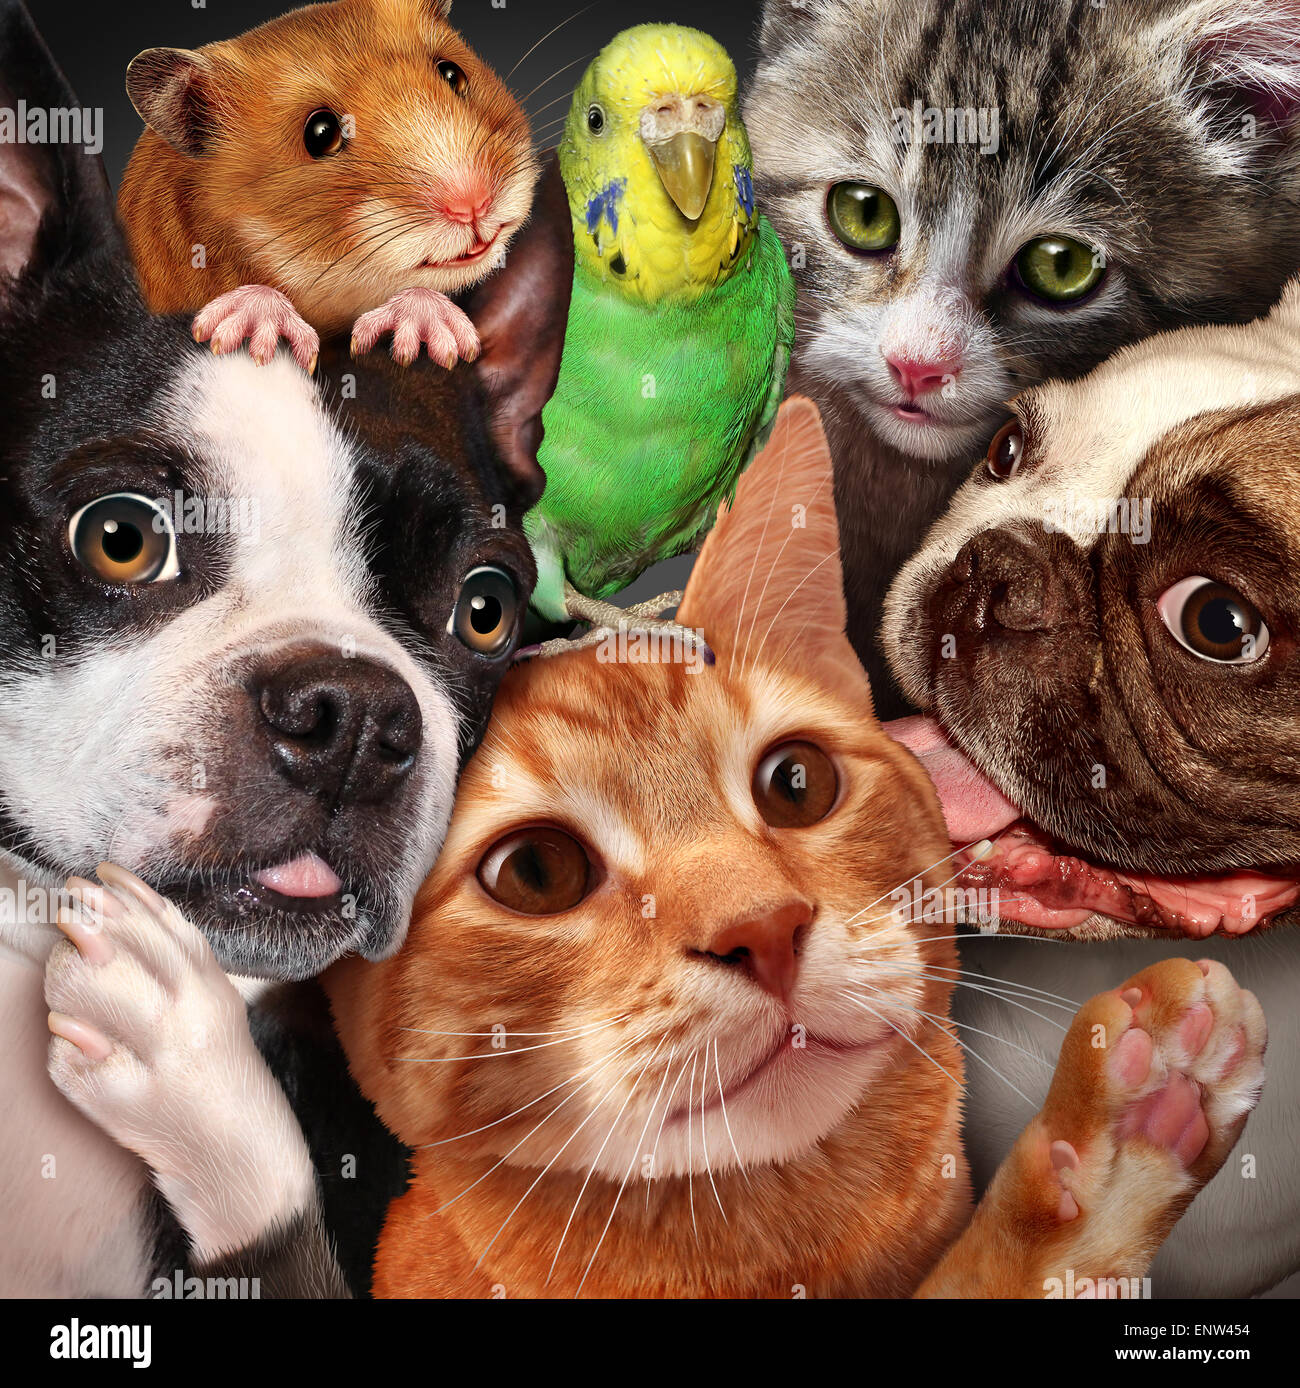 Pet group concept as dogs cats a hamster and budgie gathered together as a symbol for veterinary care and support - Stock Image